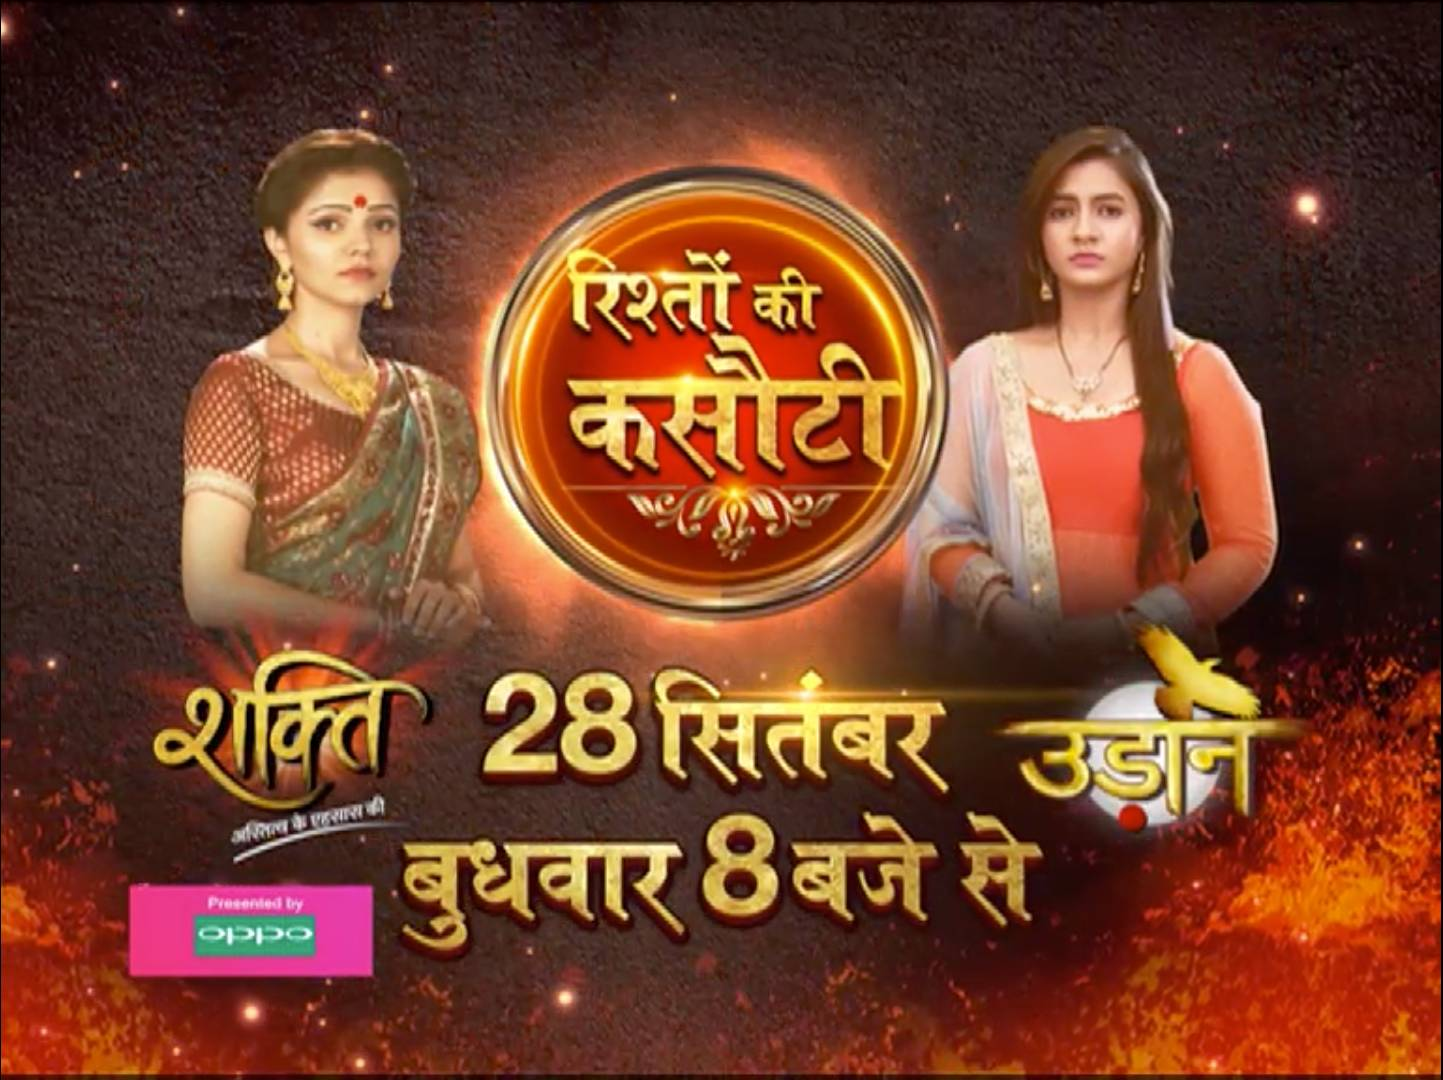 Shakti & Udann: Rishton ki Kasauti! 28th Sep 2016 at 8PM